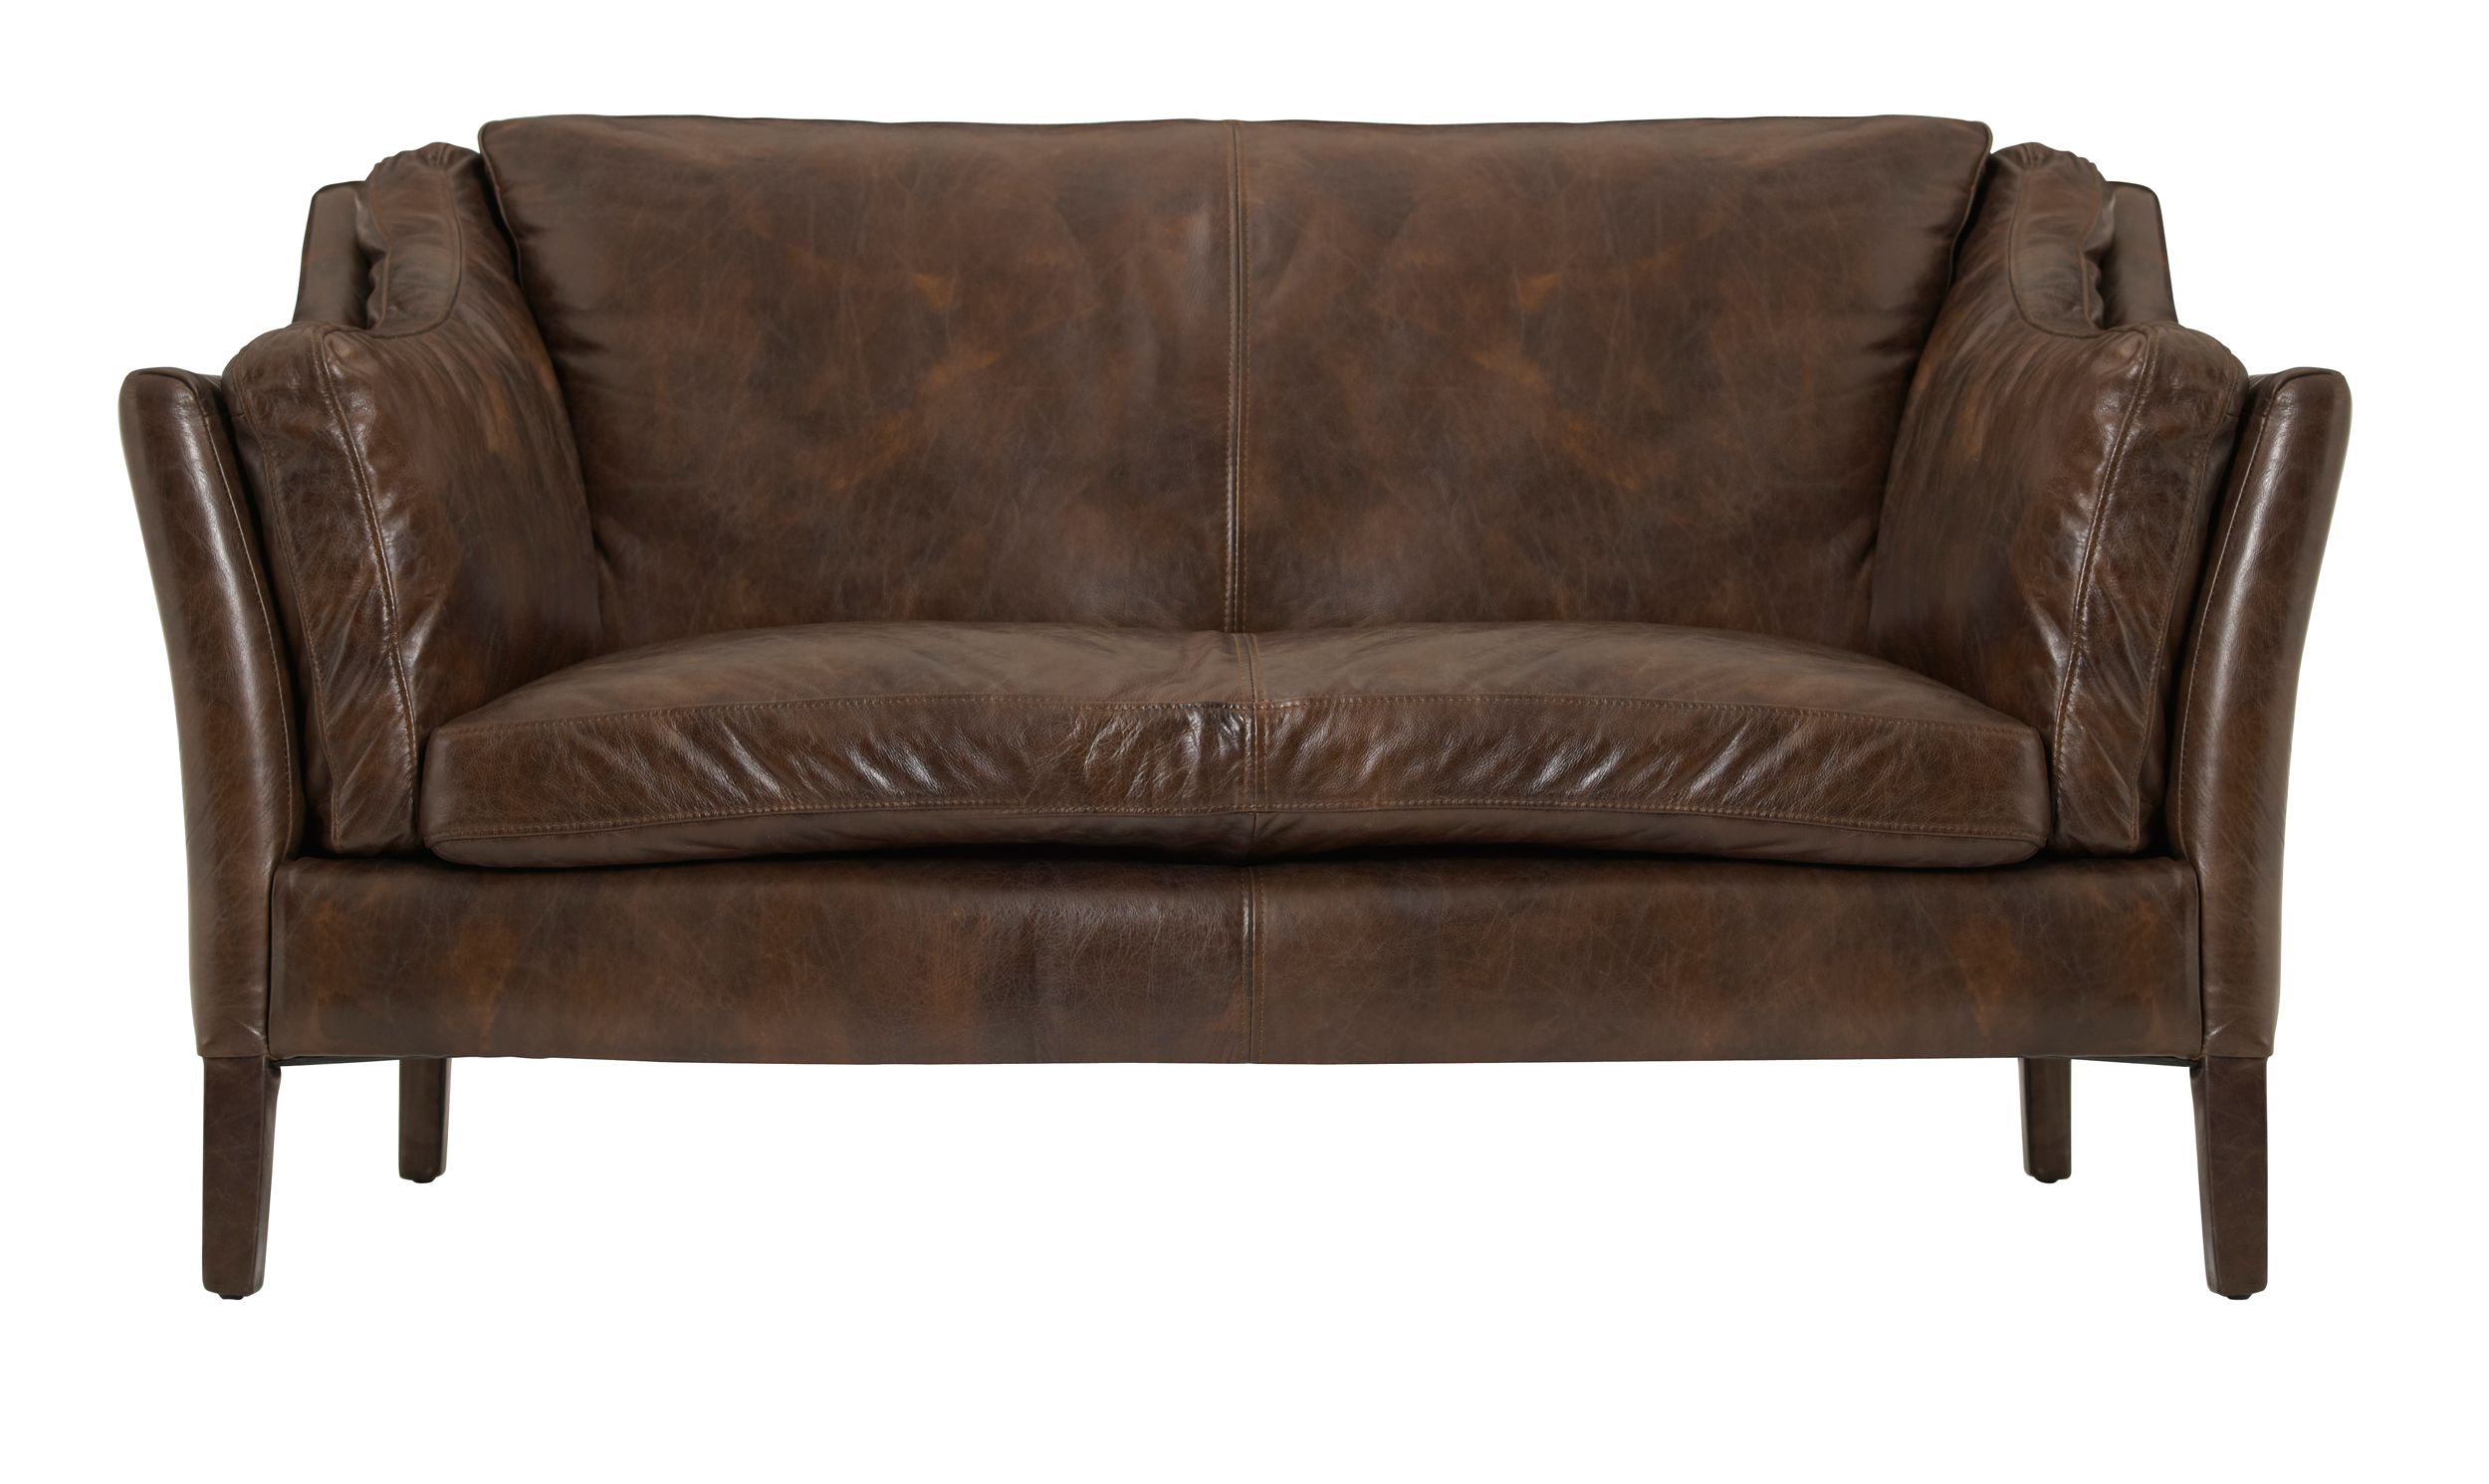 Reggio high back 2 seater sofa cocoa